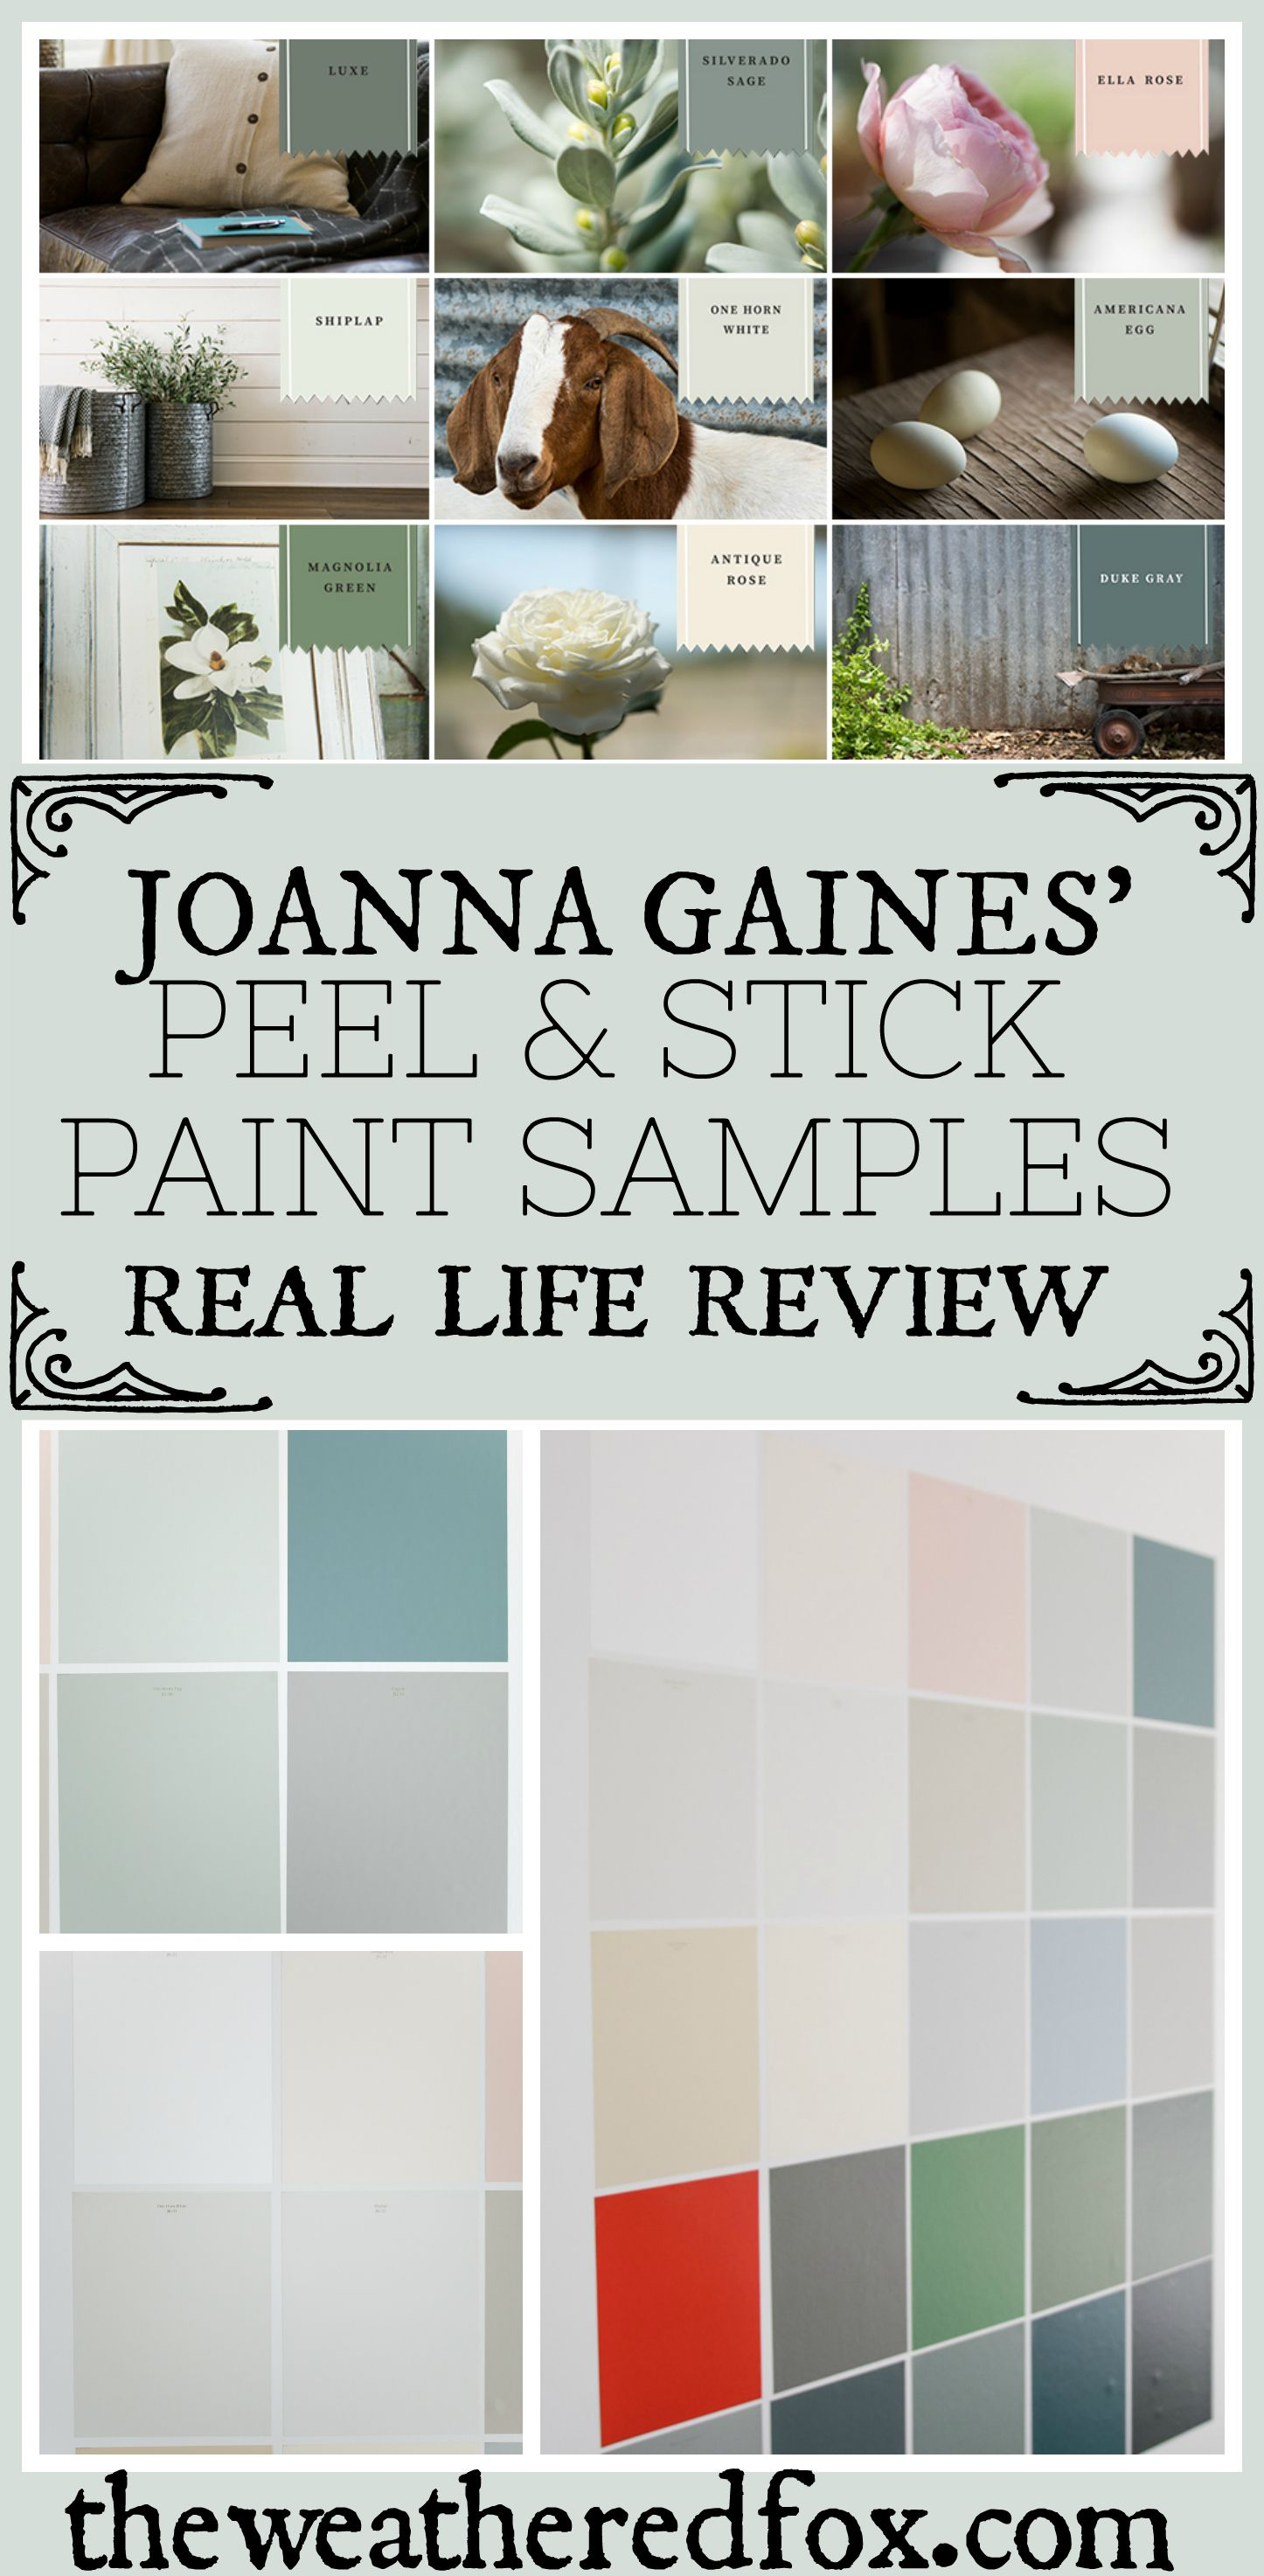 I Tried Peel And Stick Magnolia Home Paint Samples Here S What Happened The Weathered Fox Magnolia Homes Paint Fixer Upper Paint Colors Fixer Upper Paint